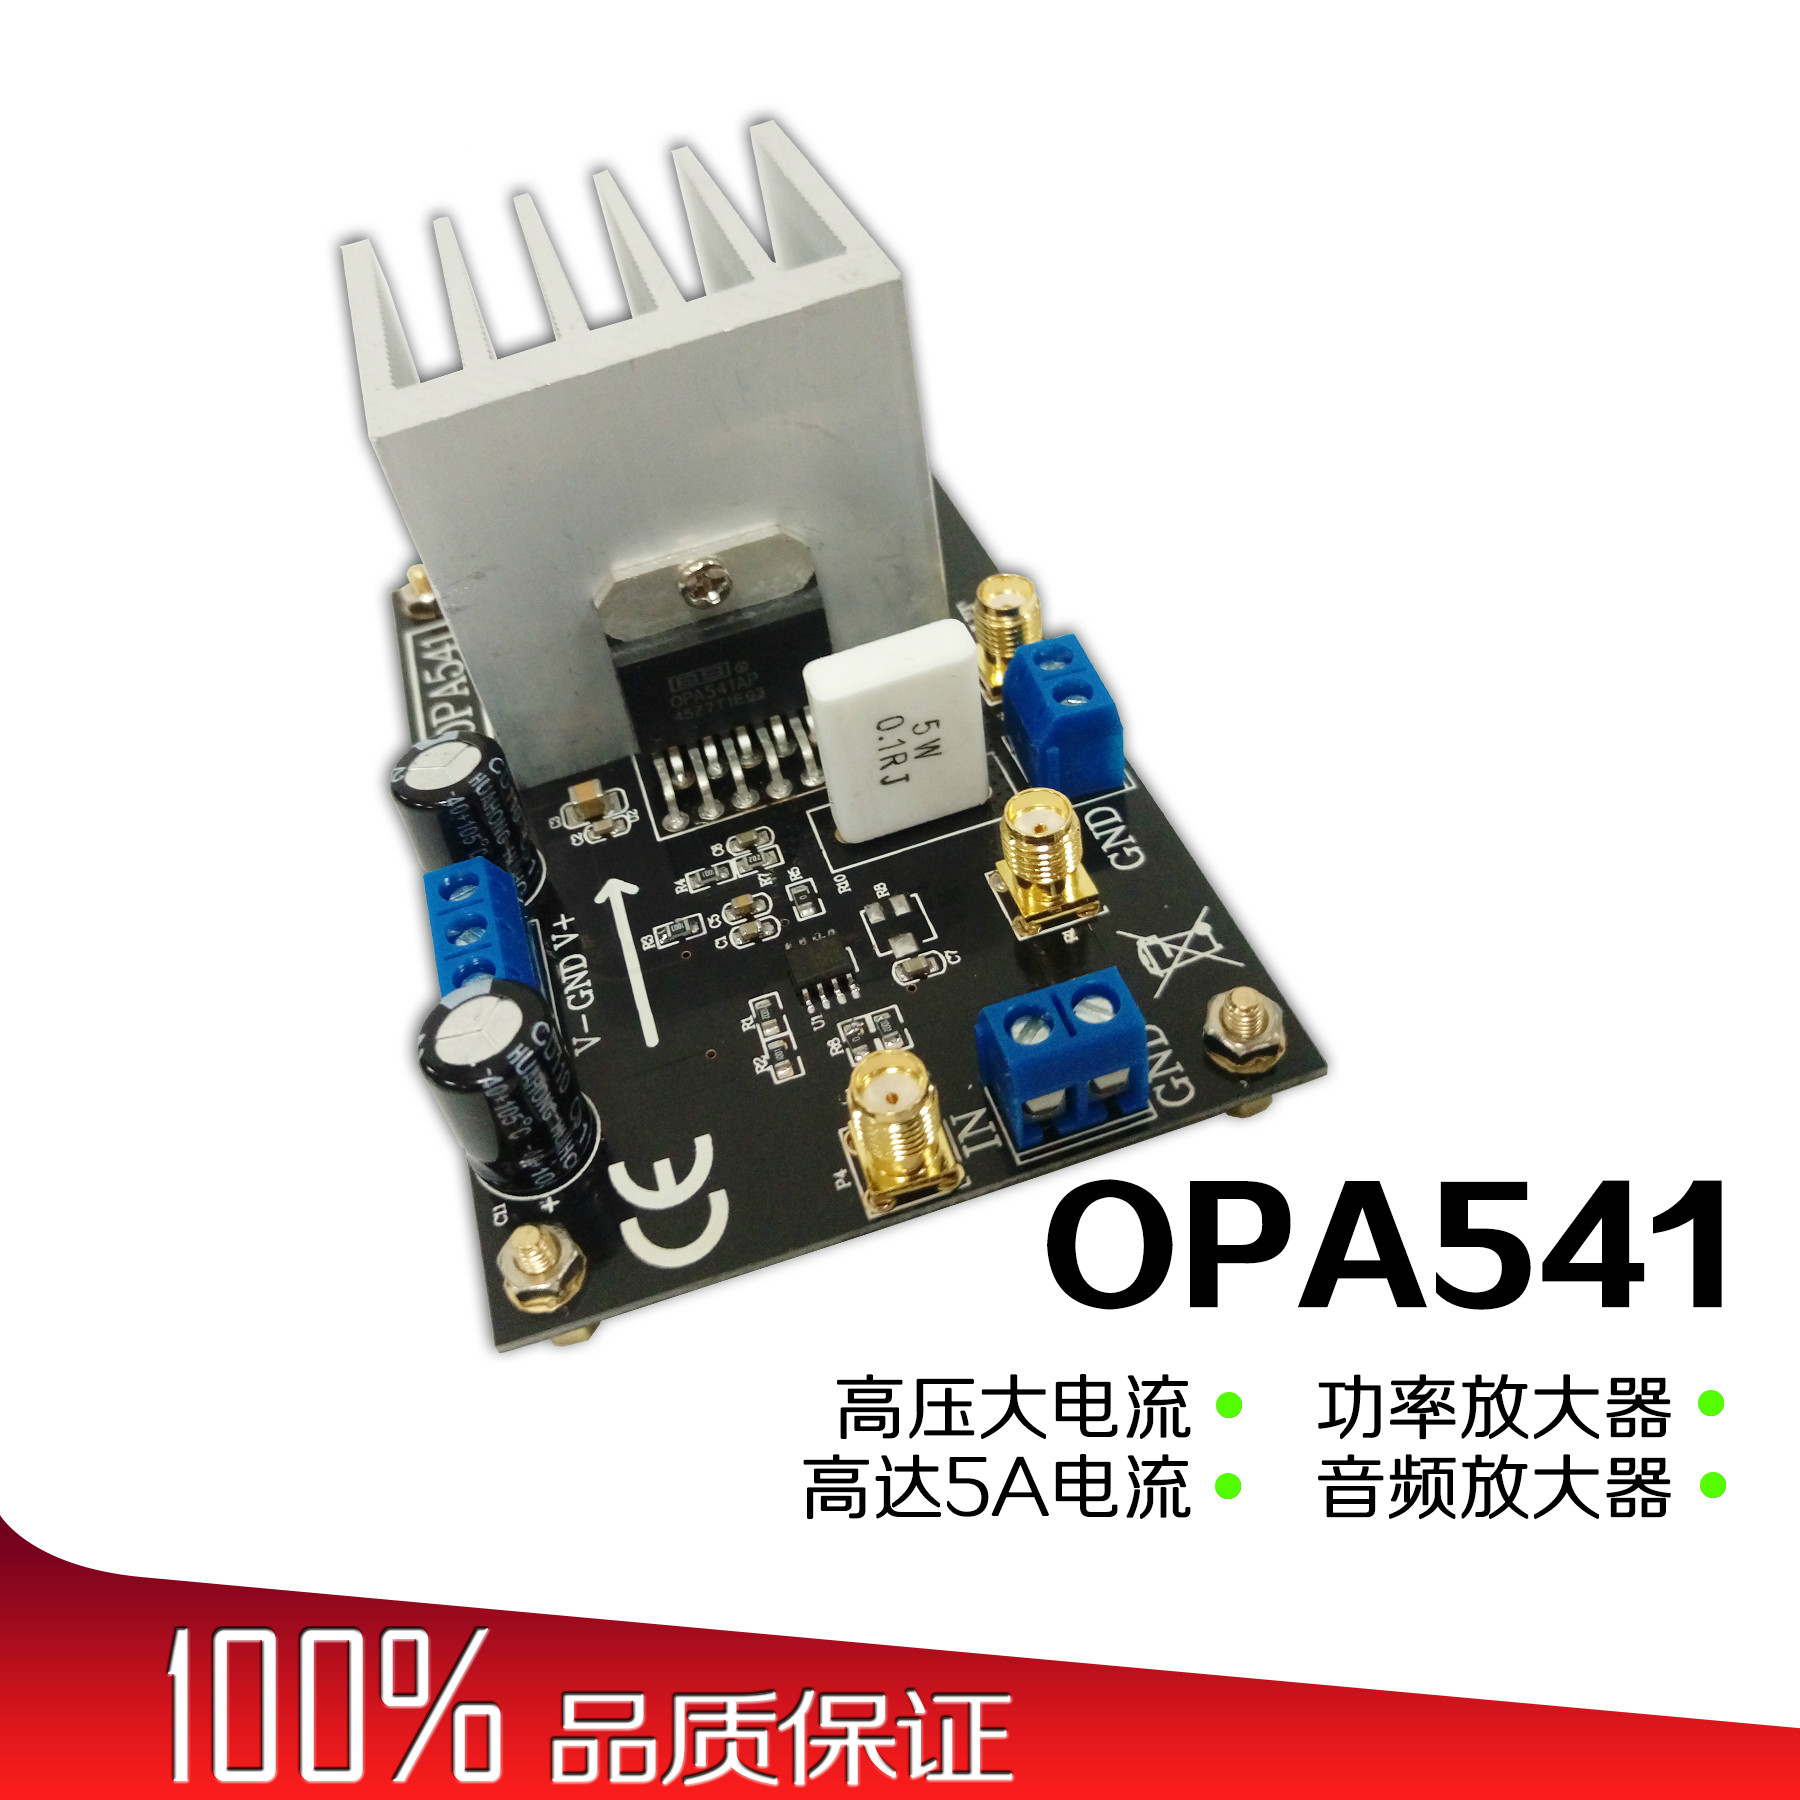 OPA541 Module amplificateur de puissance amplificateur Audio 5A courant haute tension haute tension carte amplificateurOPA541 Module amplificateur de puissance amplificateur Audio 5A courant haute tension haute tension carte amplificateur